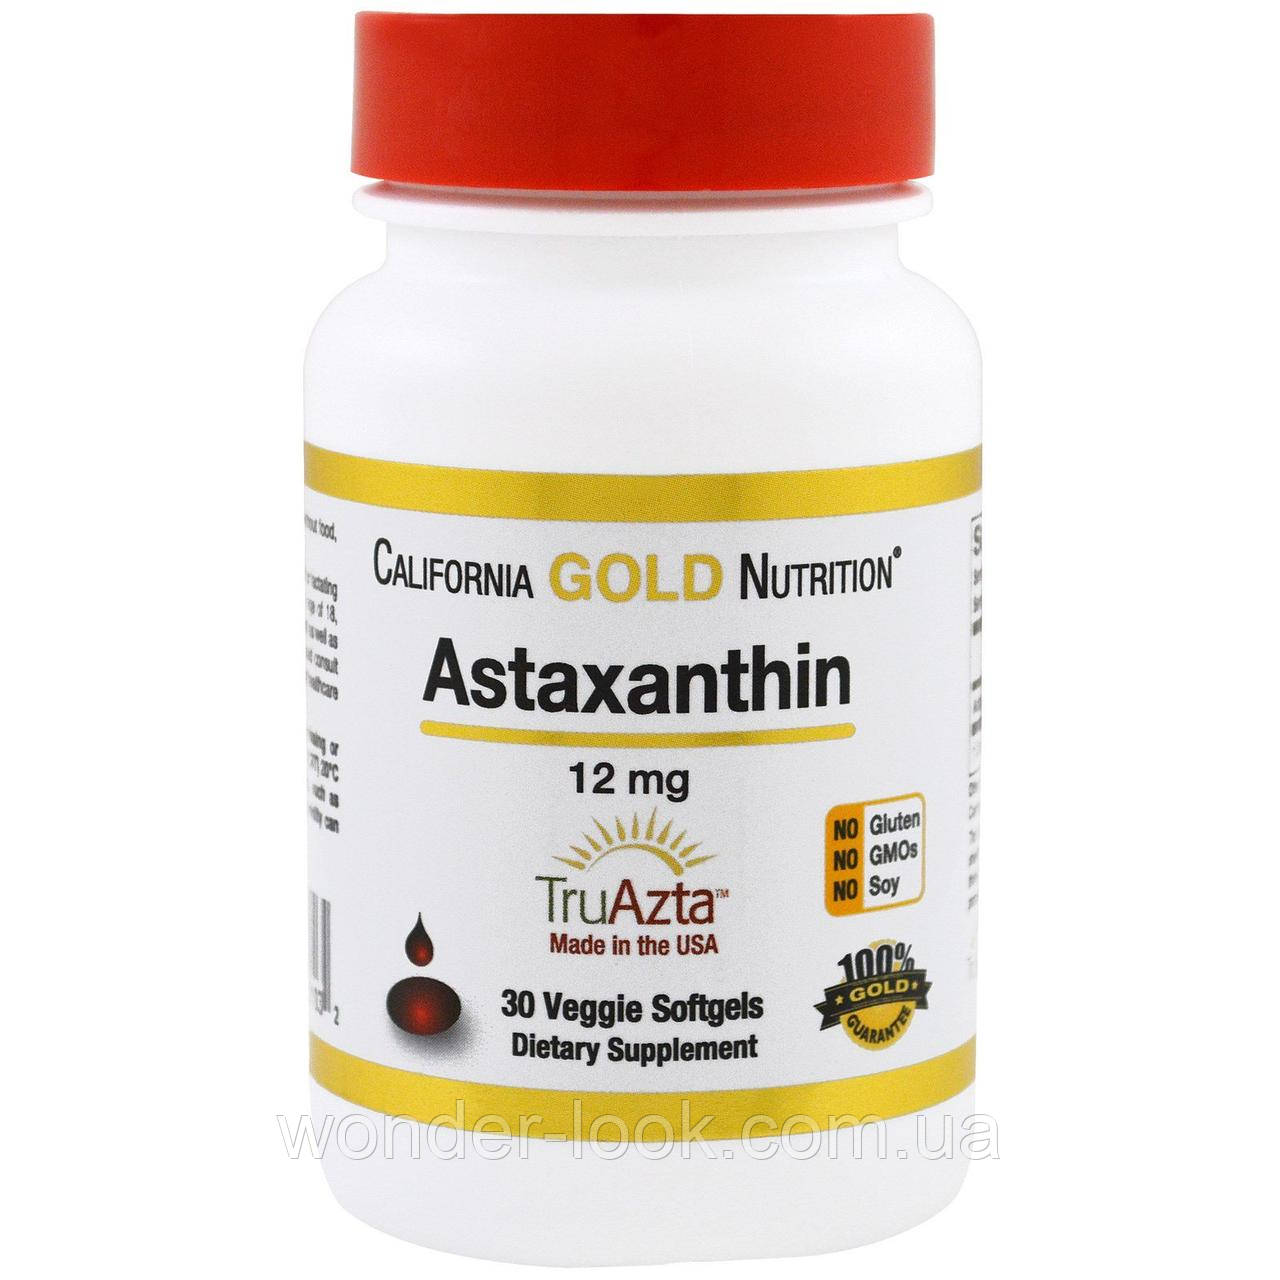 Astaxanthin Астаксантин California Gold Nutrition, CGN